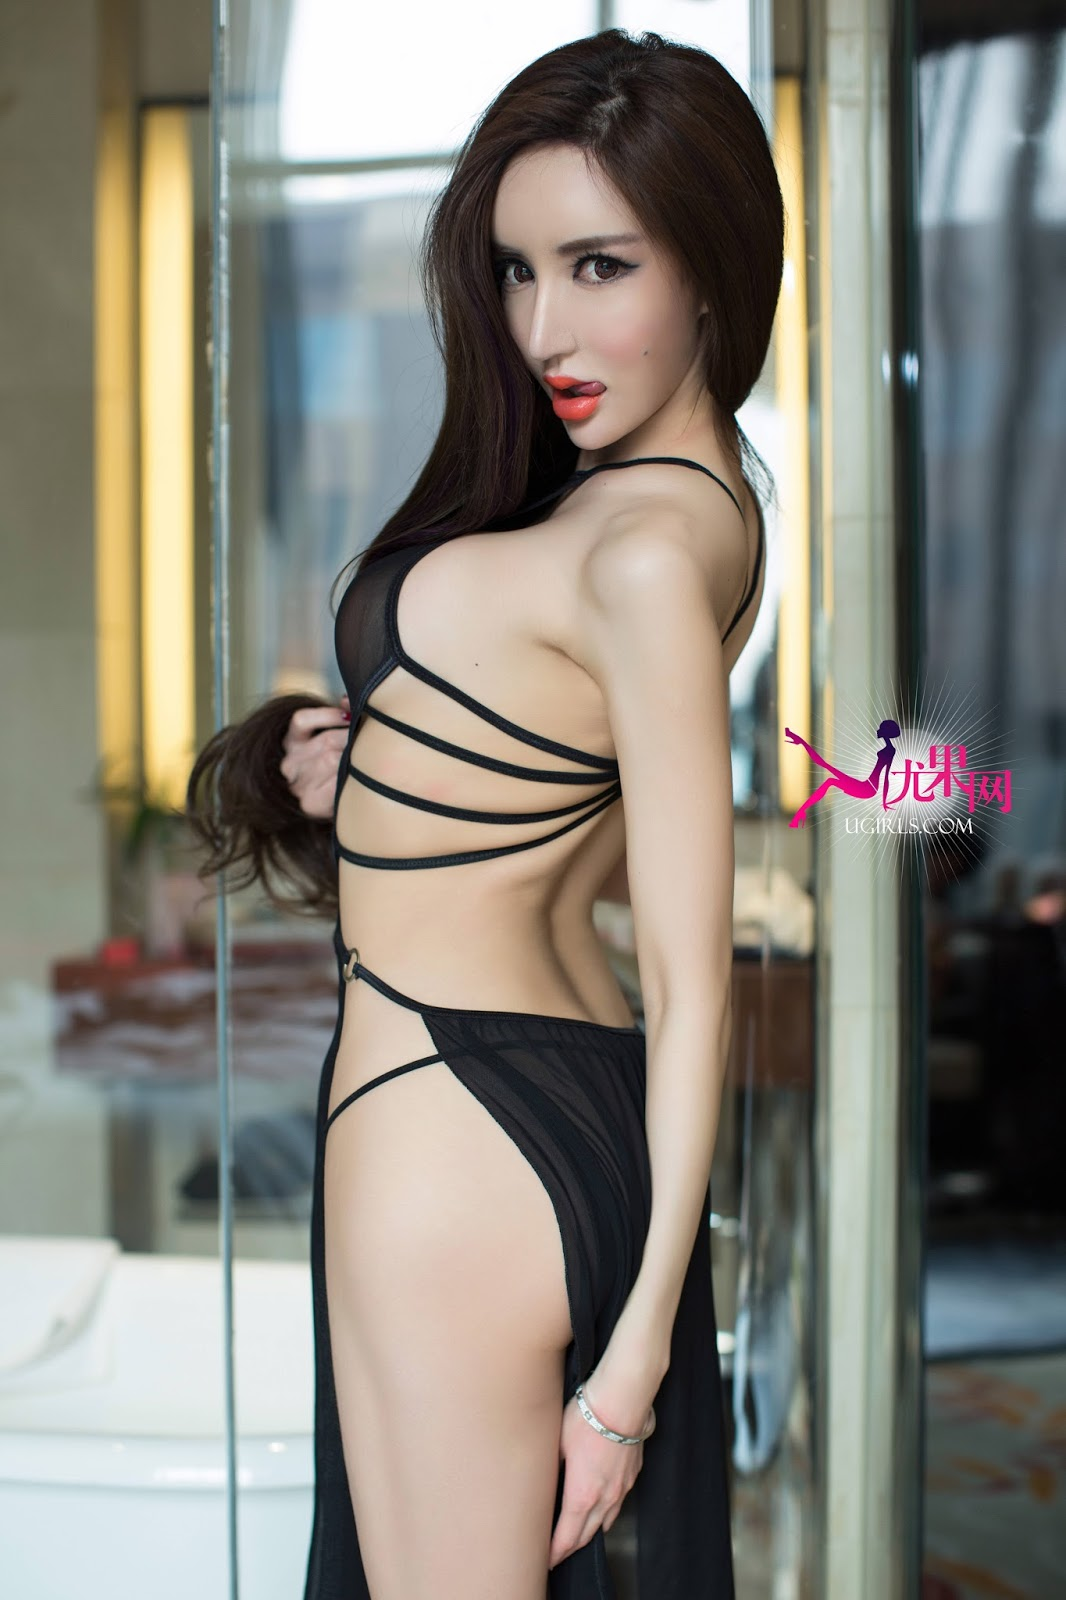 Wang Rui Er 王瑞儿 Hot ugirls_尤果网 No.078期 HD Photo Gallery ...